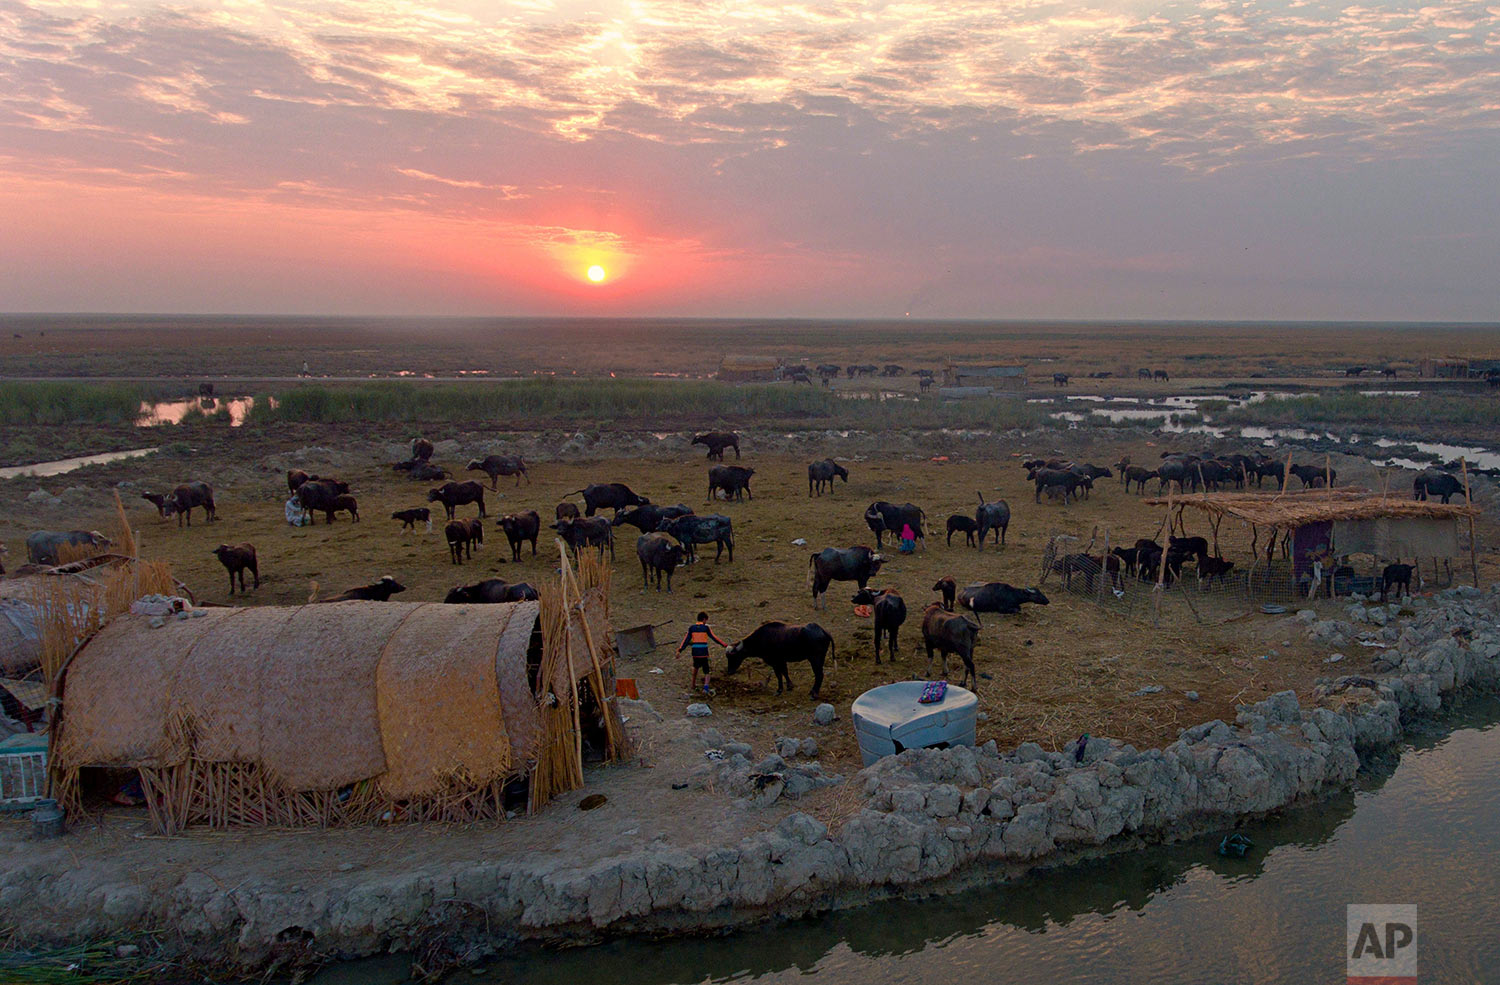 In this Monday, Sept. 11, 2017 photo, the sun sets over an island paddock for water buffalo in the Chabaish marsh in Nasiriyah, about 200 miles (320 kilometers) southeast of Baghdad, Iraq. Iraq's southern marshes, a lush remnant of the cradle of civilization, were reborn after the 2003 fall of Saddam Hussein when residents dismantled dams he had built a decade earlier to drain the area in order to root out Shiite rebels. But now the largest wetlands in the Middle East are imperiled again, by government mismanagement and new upstream projects.(AP Photo/Nabil al-Jurani)